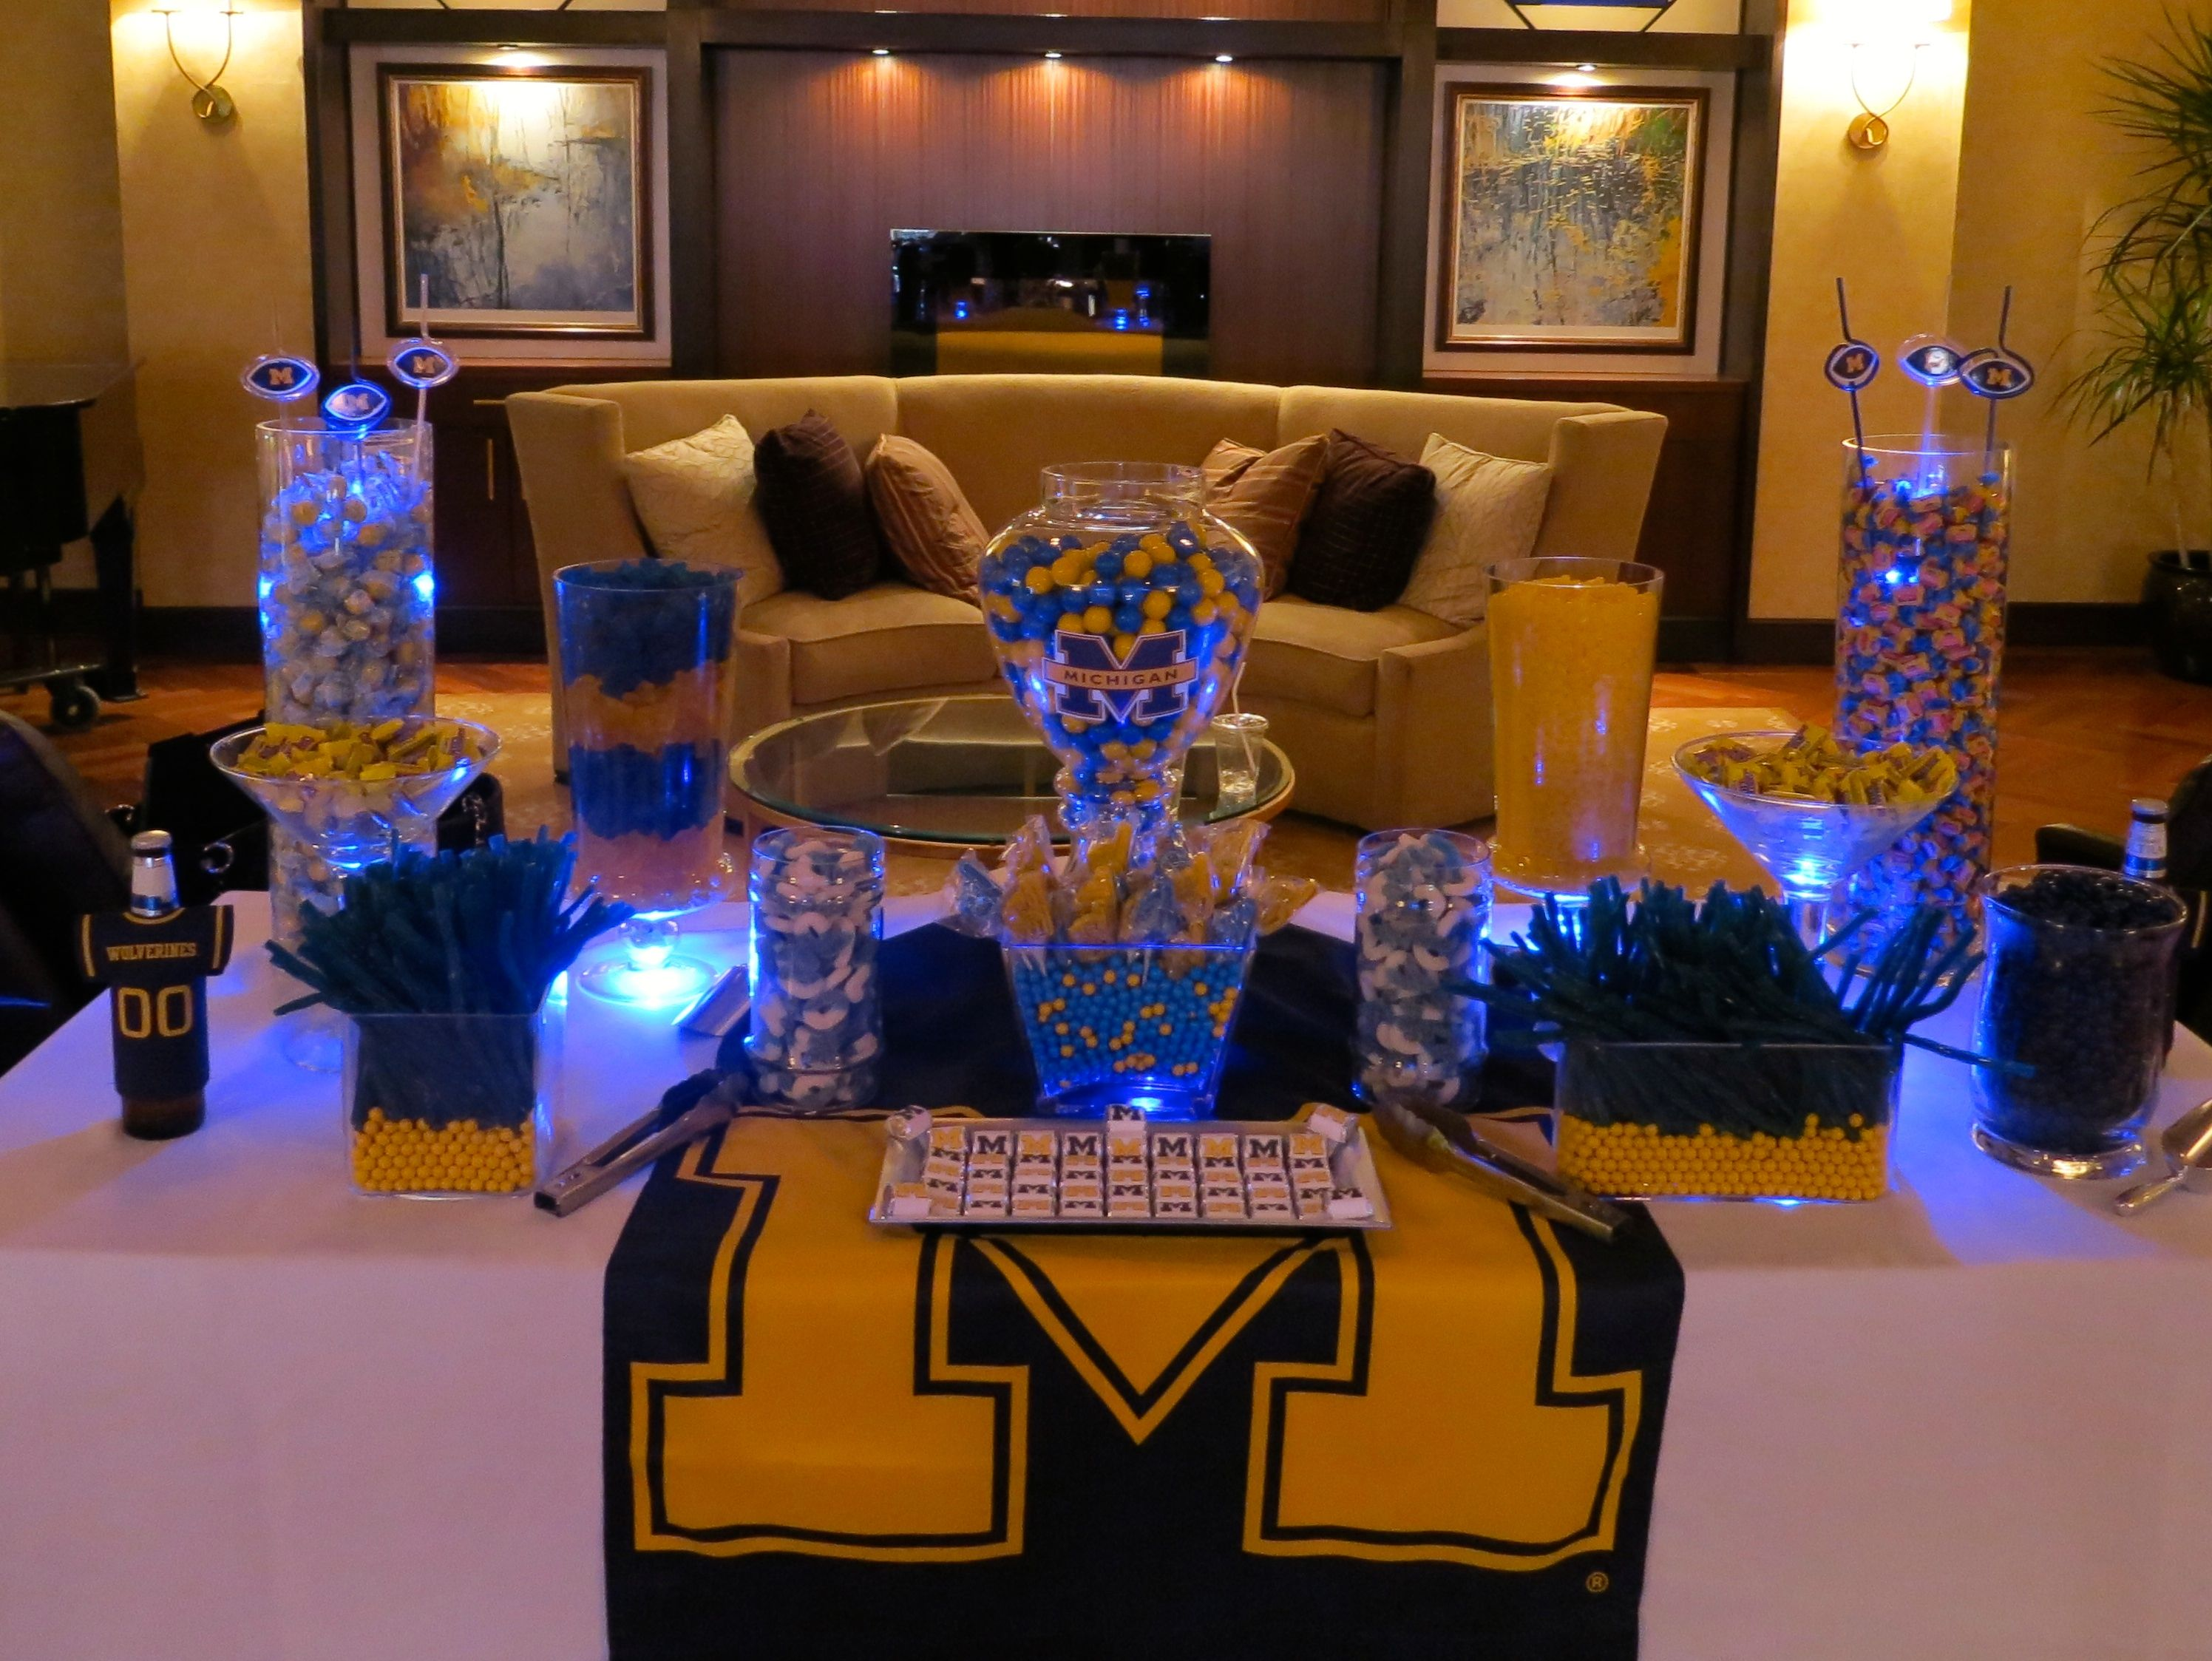 University of michigan christmas ornaments - University Of Michigan Candy Buffet What A Sweet Way To Show Your Spirit